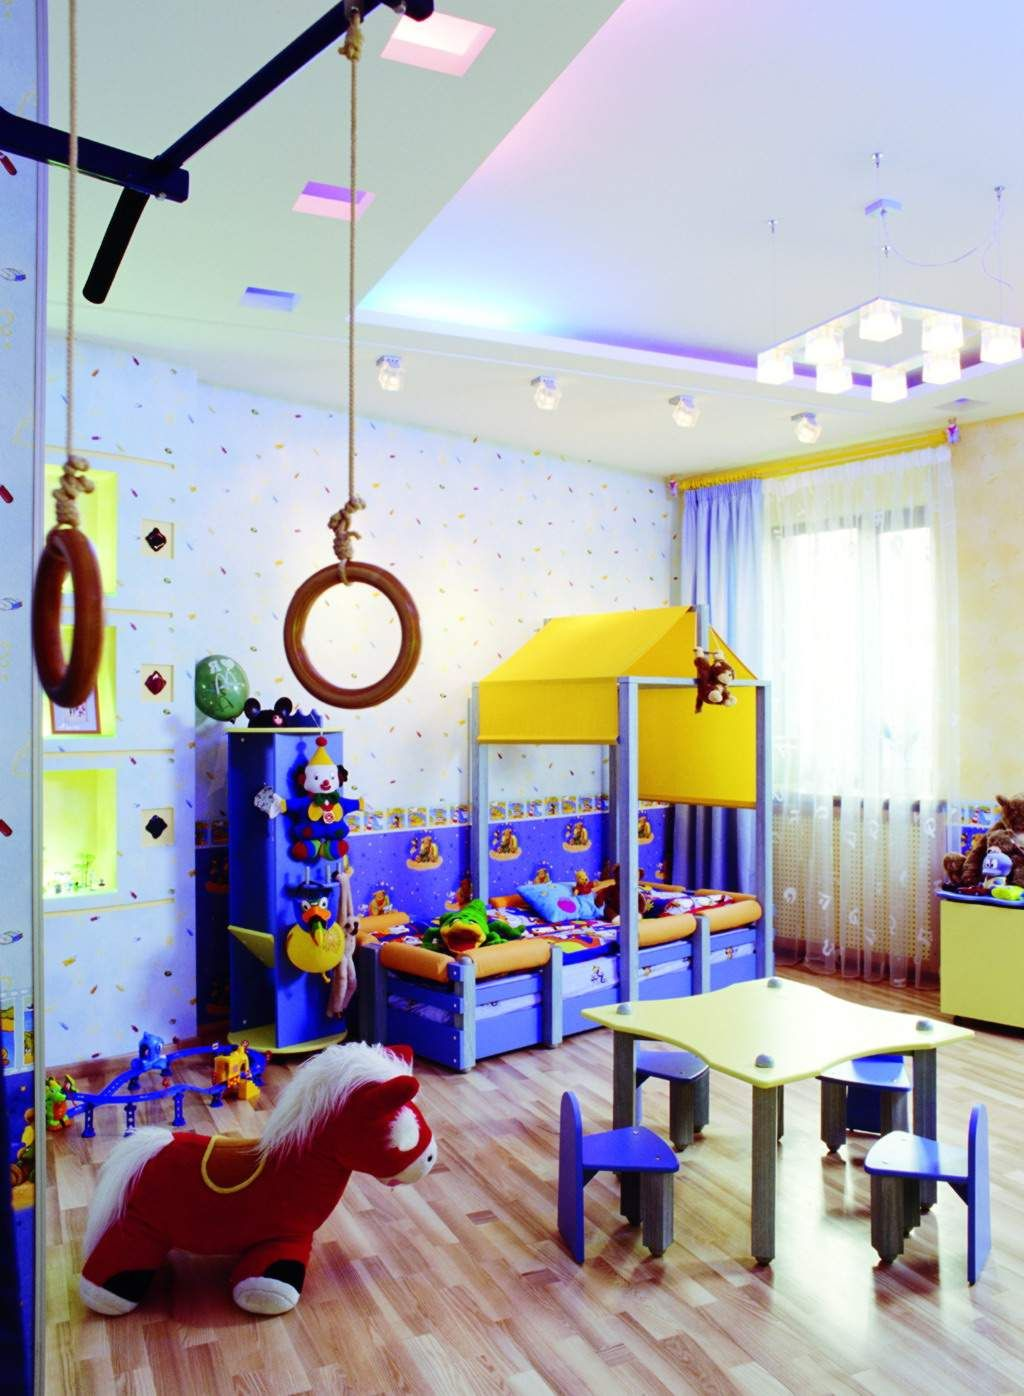 Kids bedroom kids room interior design with play and learn Wallpaper for childrens room